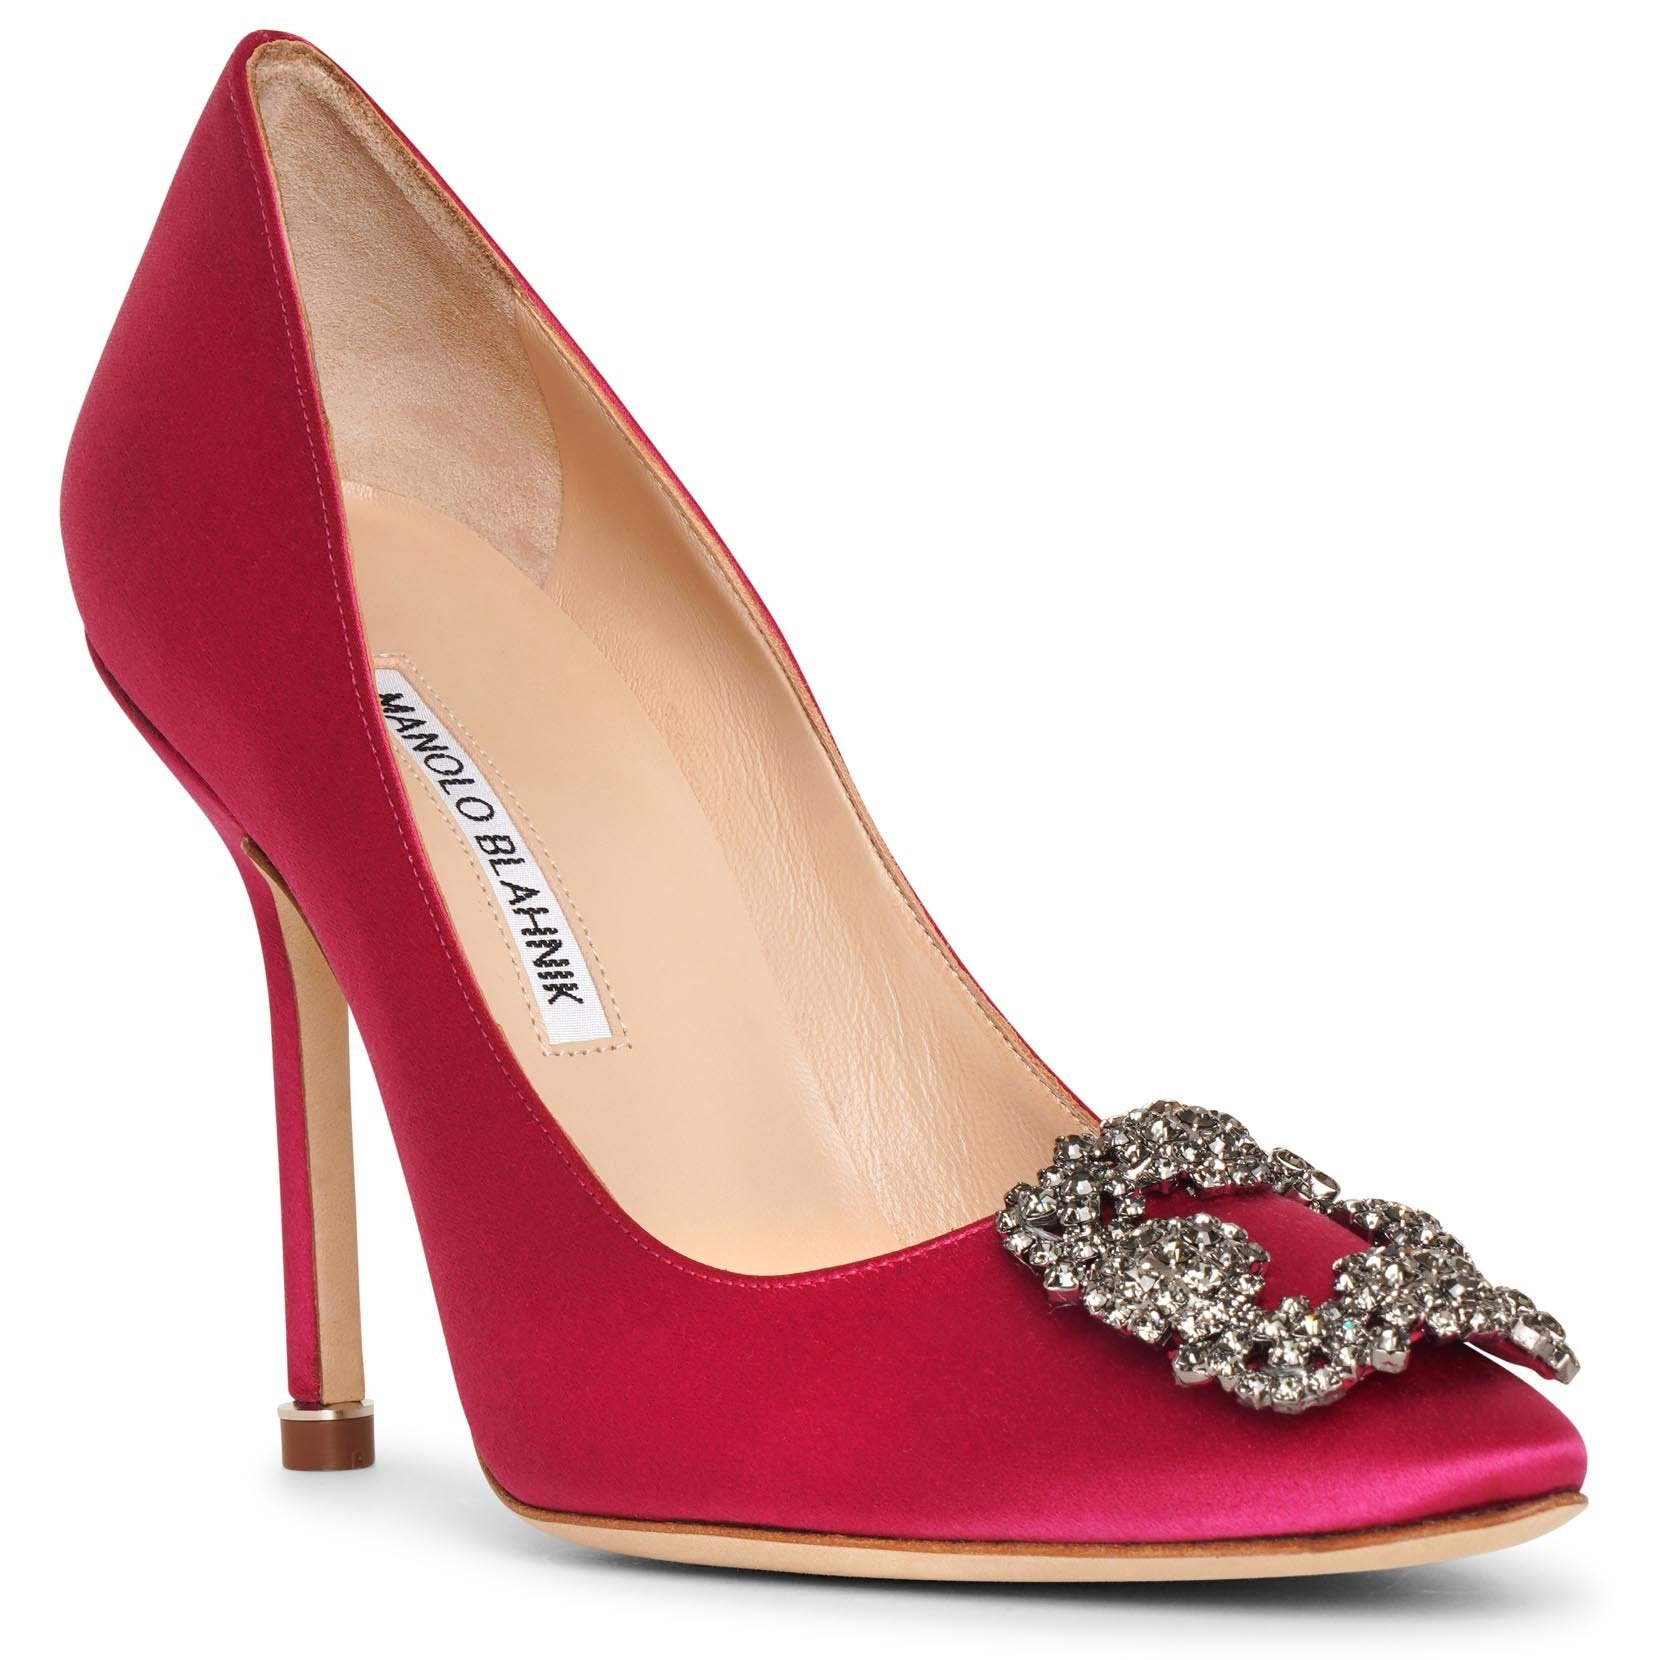 Hangisi 105 dark pink satin pumps